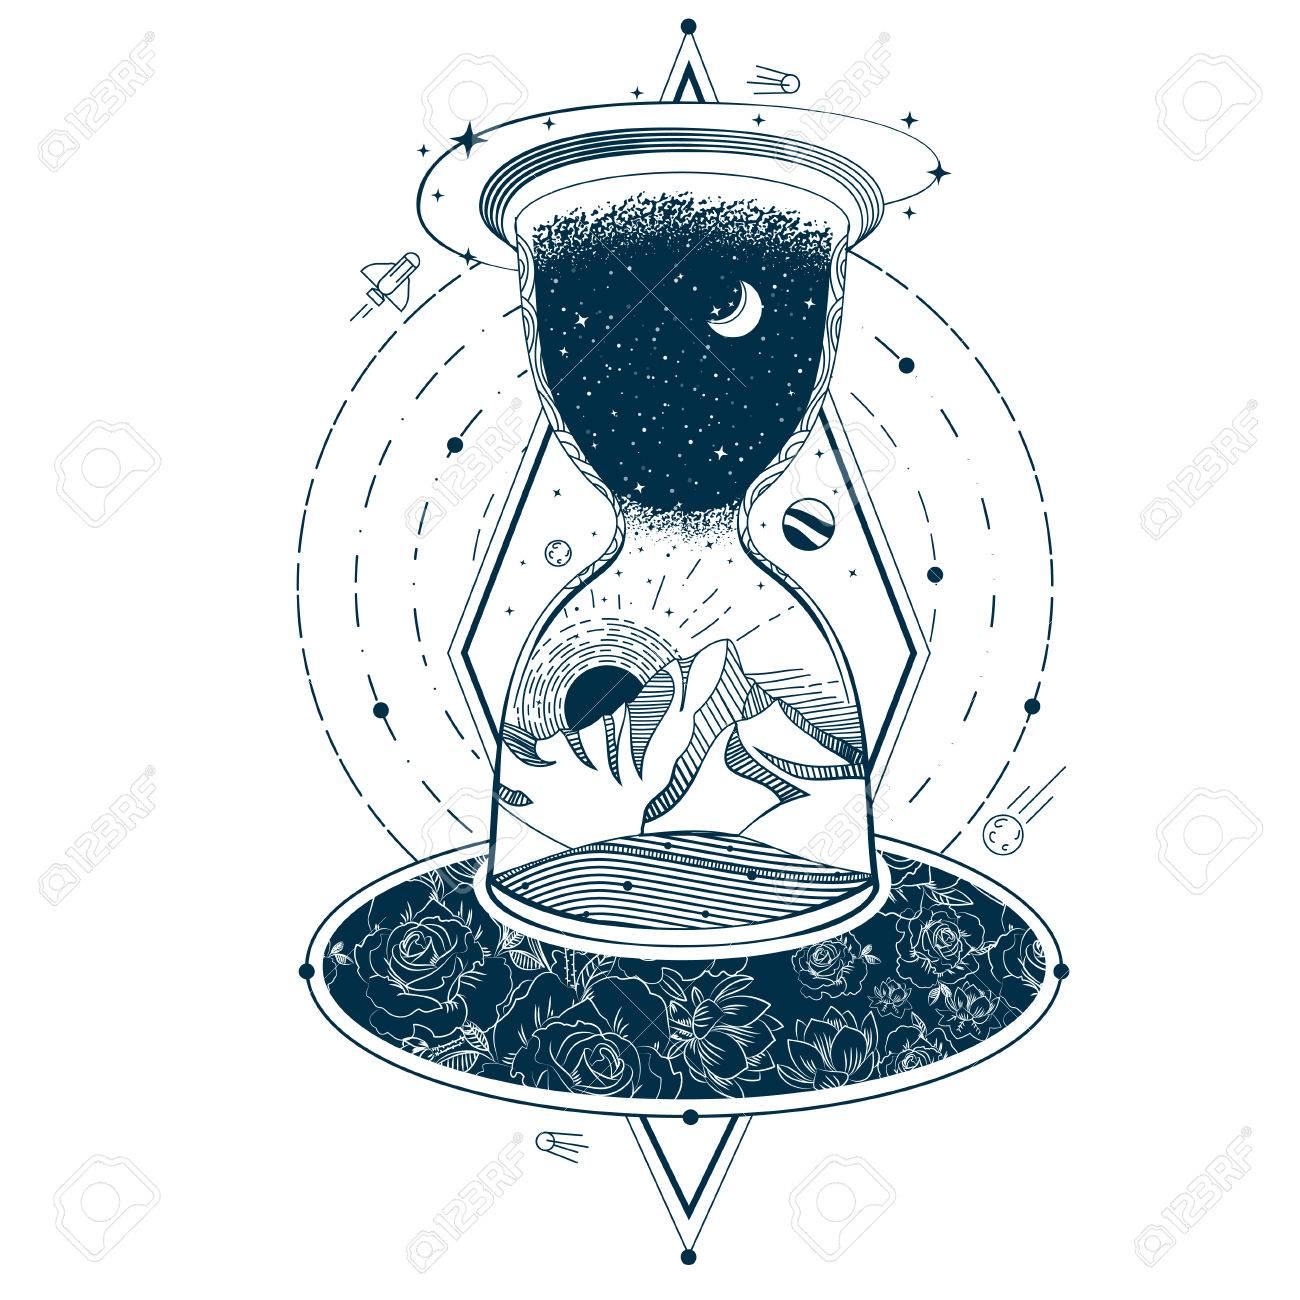 Vector vector illustration of a sketch of an abstract tattoo with an hourglass enclosing the sky and the earth against the background of an infinite